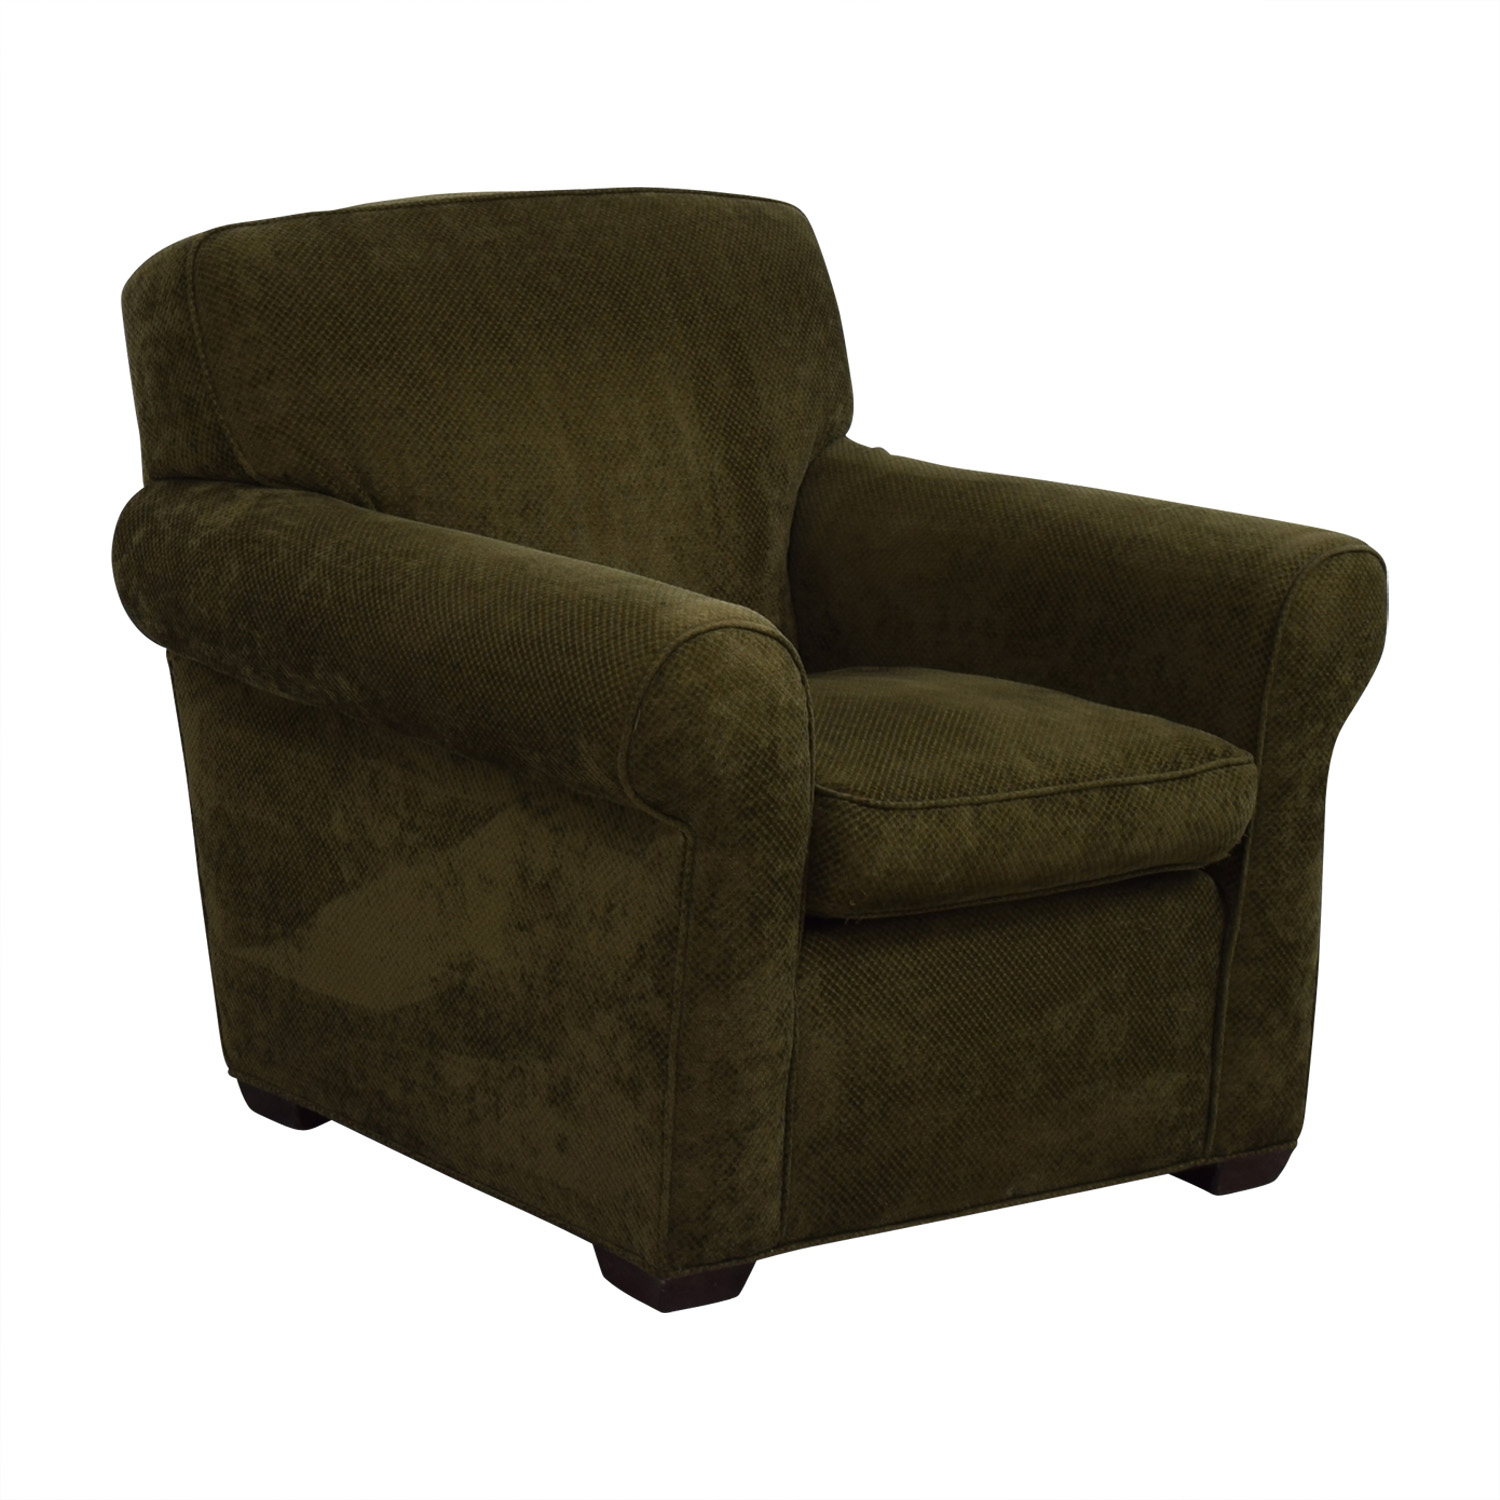 90 OFF  Large Olive Green Accent Chair  Chairs